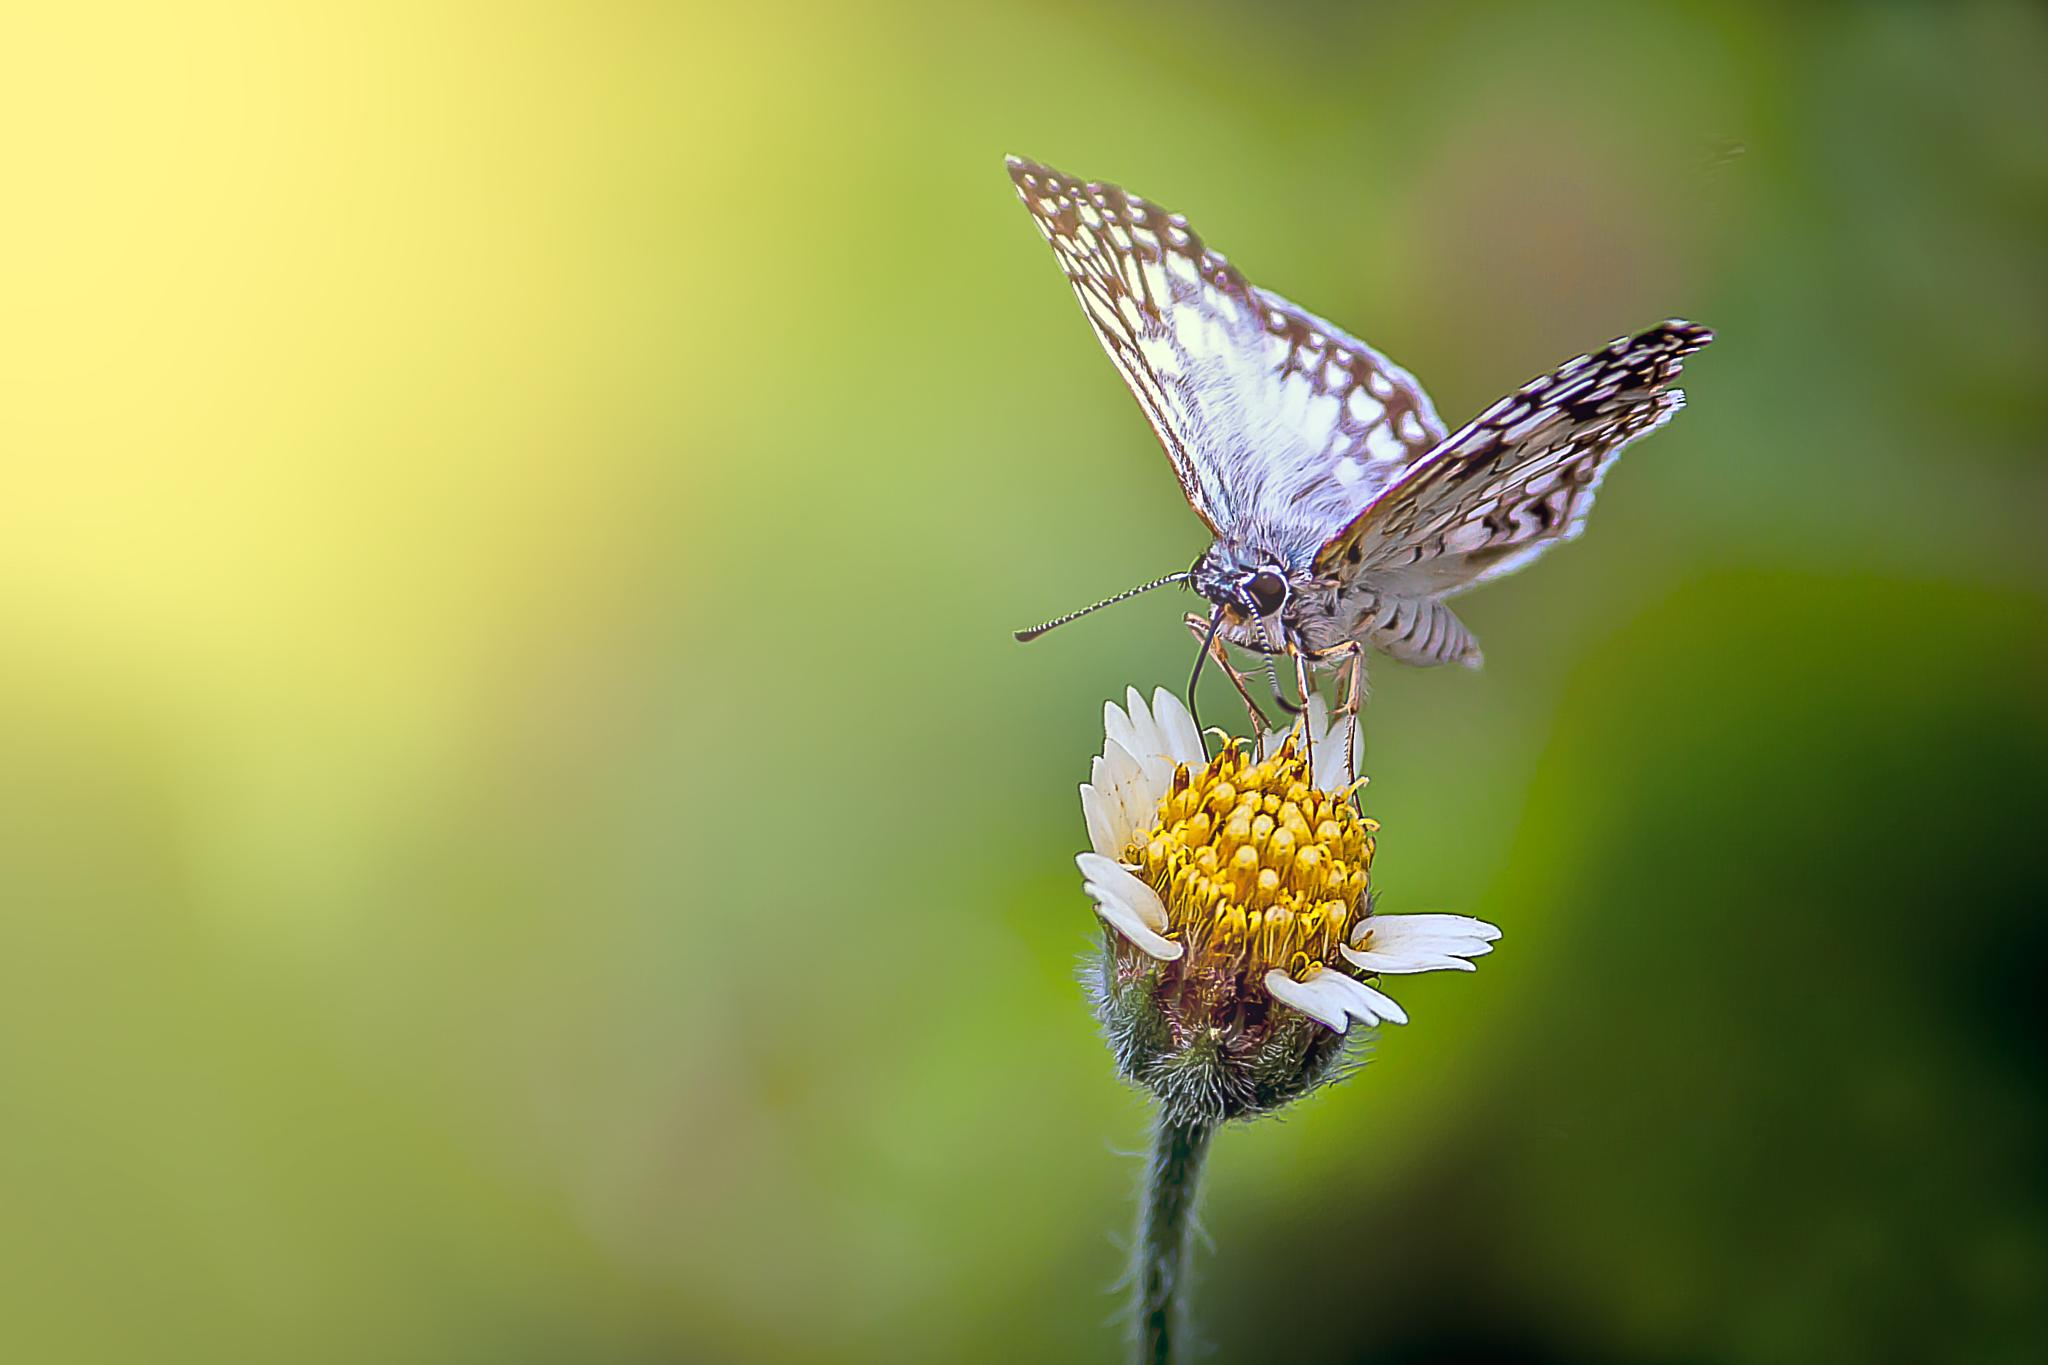 Tiny butterfly by Tony Guzman